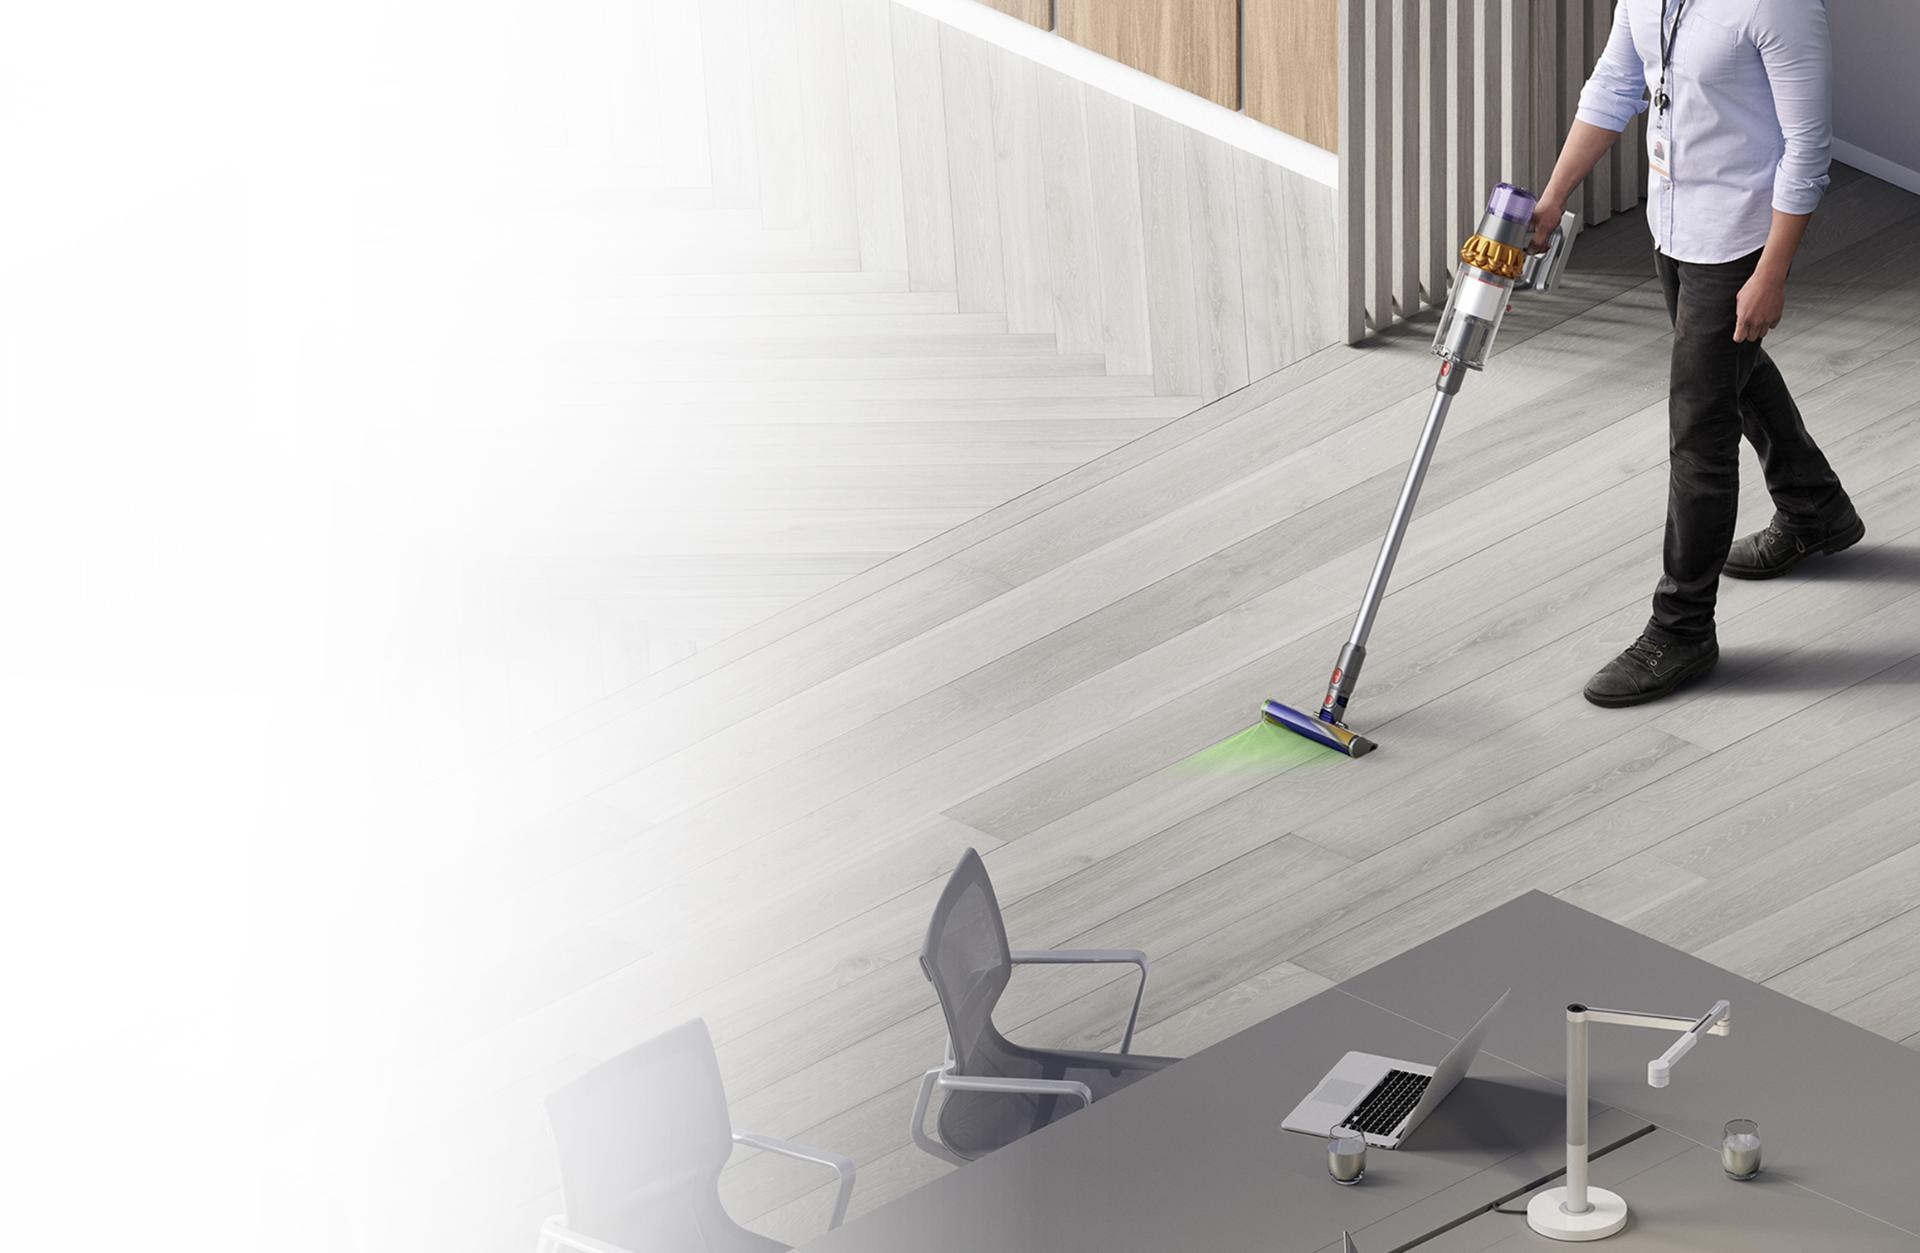 Man cleaning floor with Dyson V15 Detect vacuum